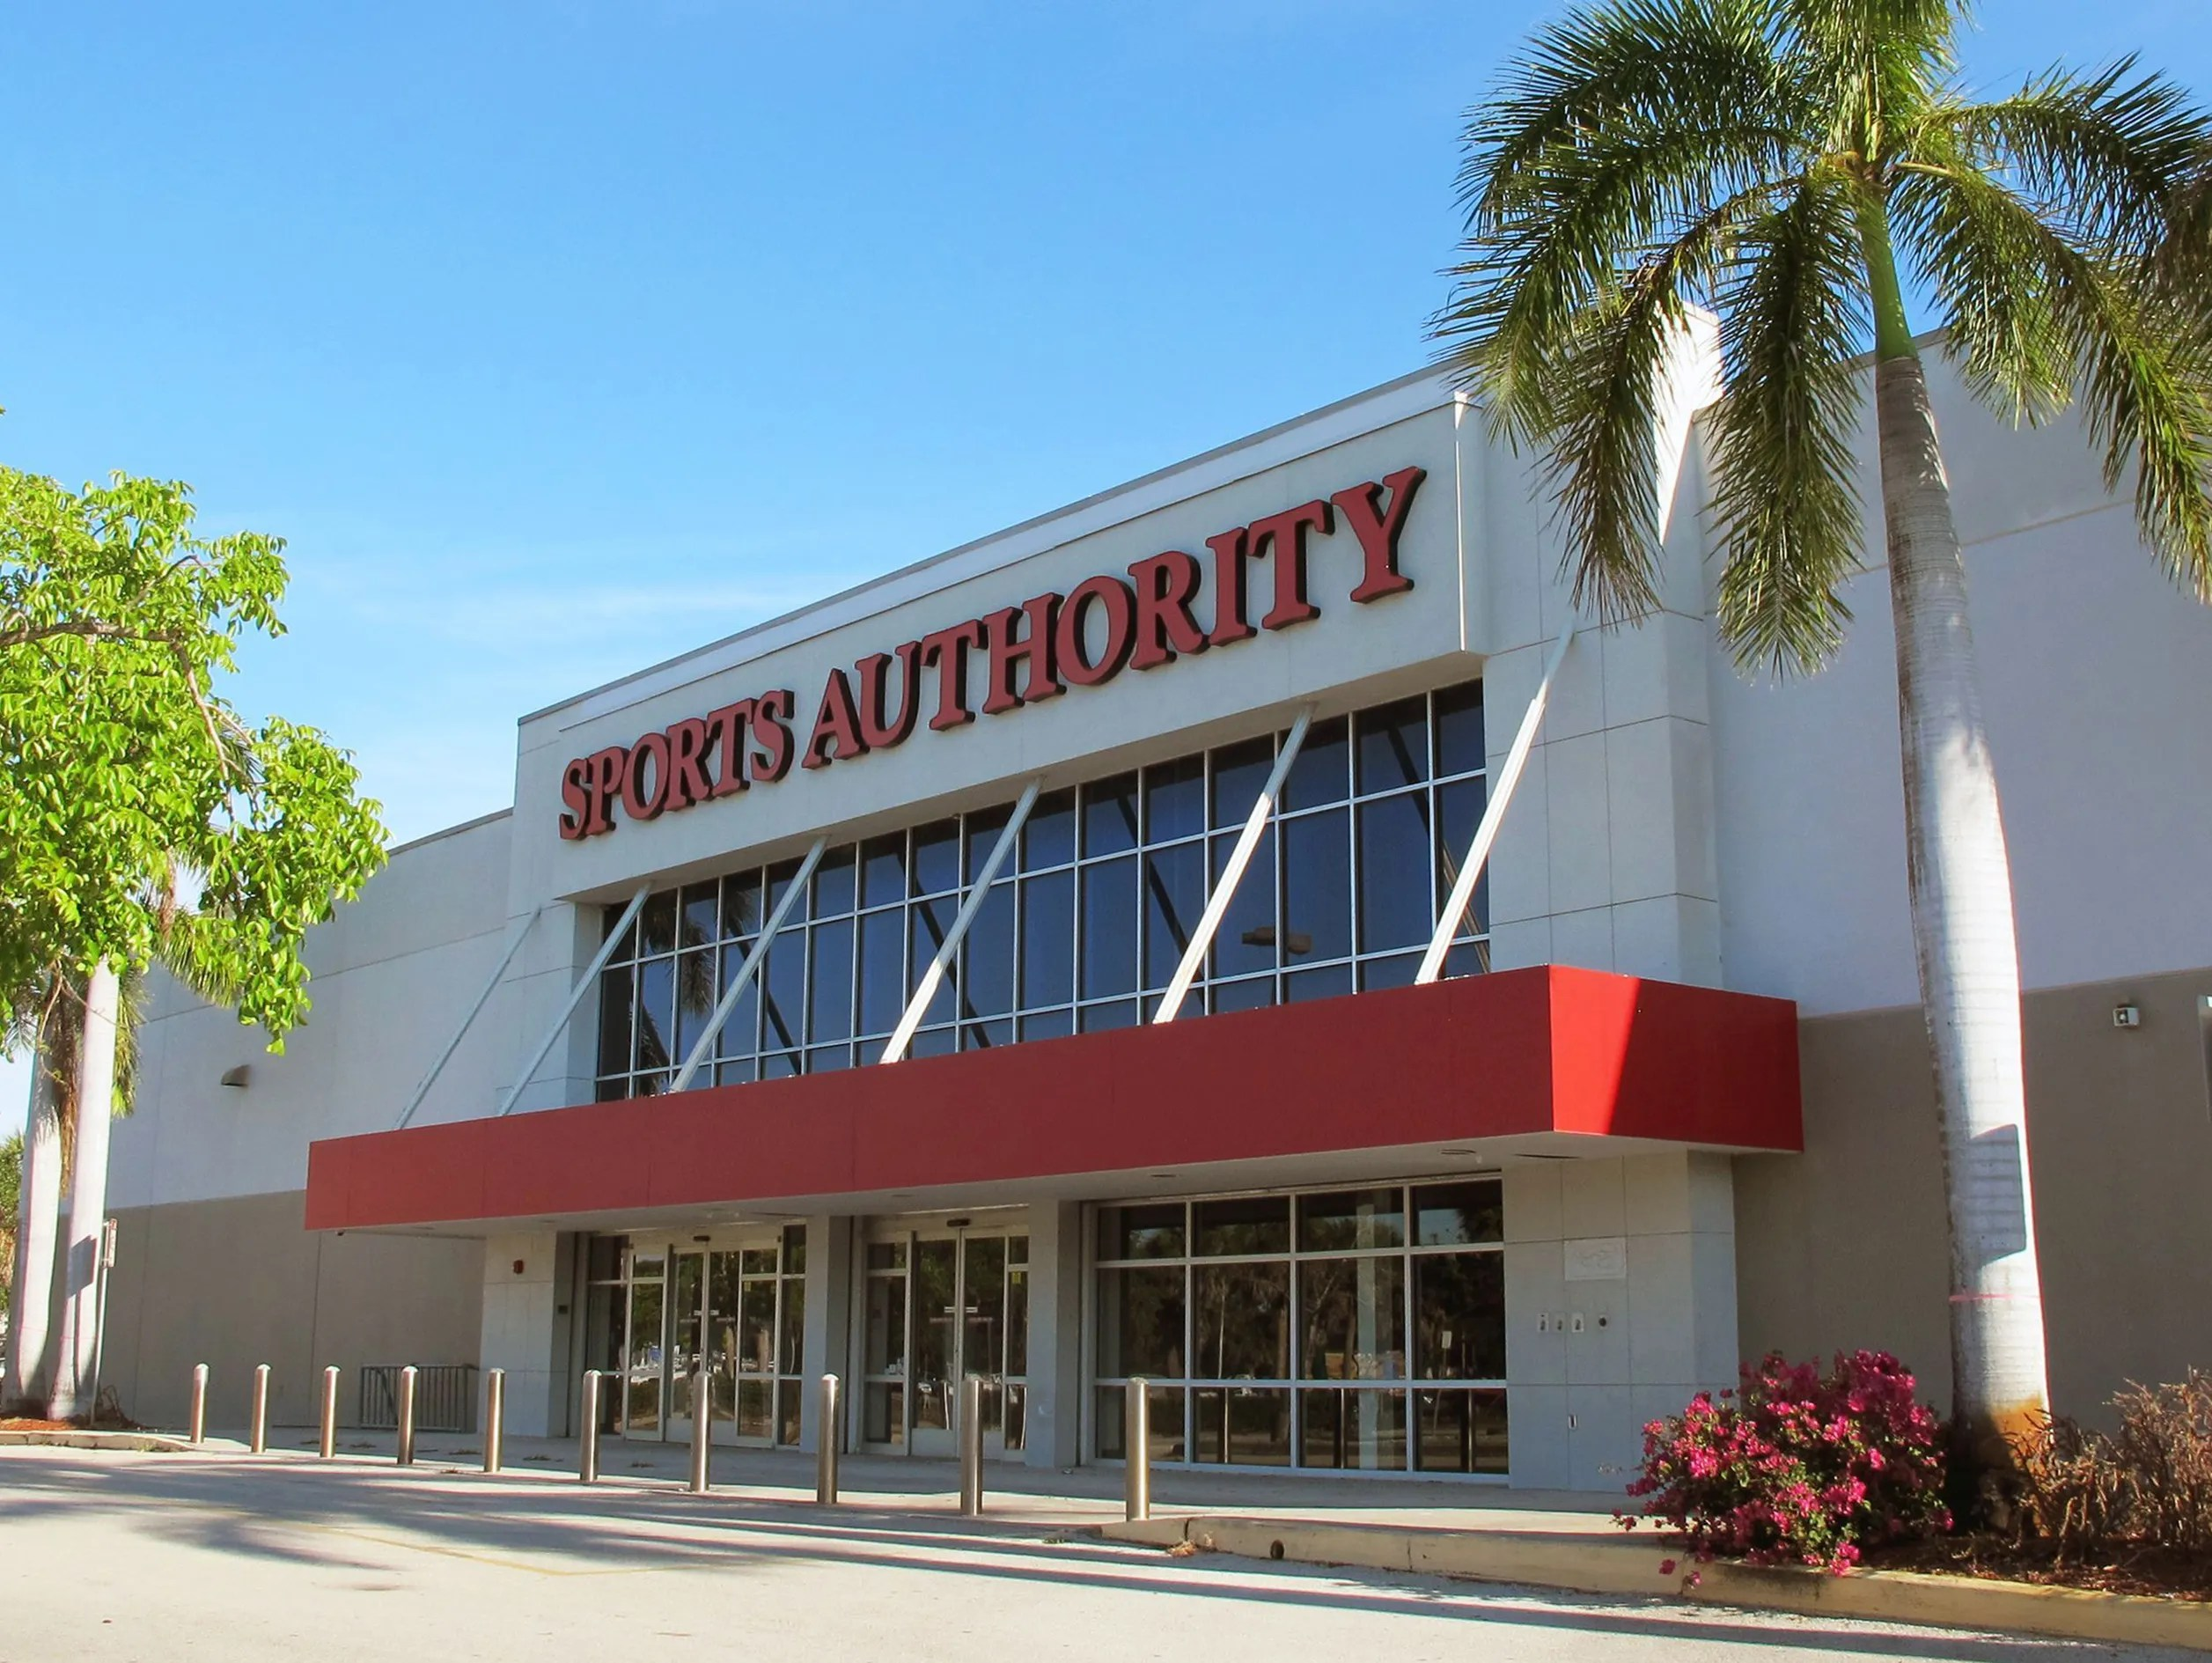 Updated 12/07/20 john coletti/getty images the city of st. In the Know: El Dorado Furniture moving into old Sports ...